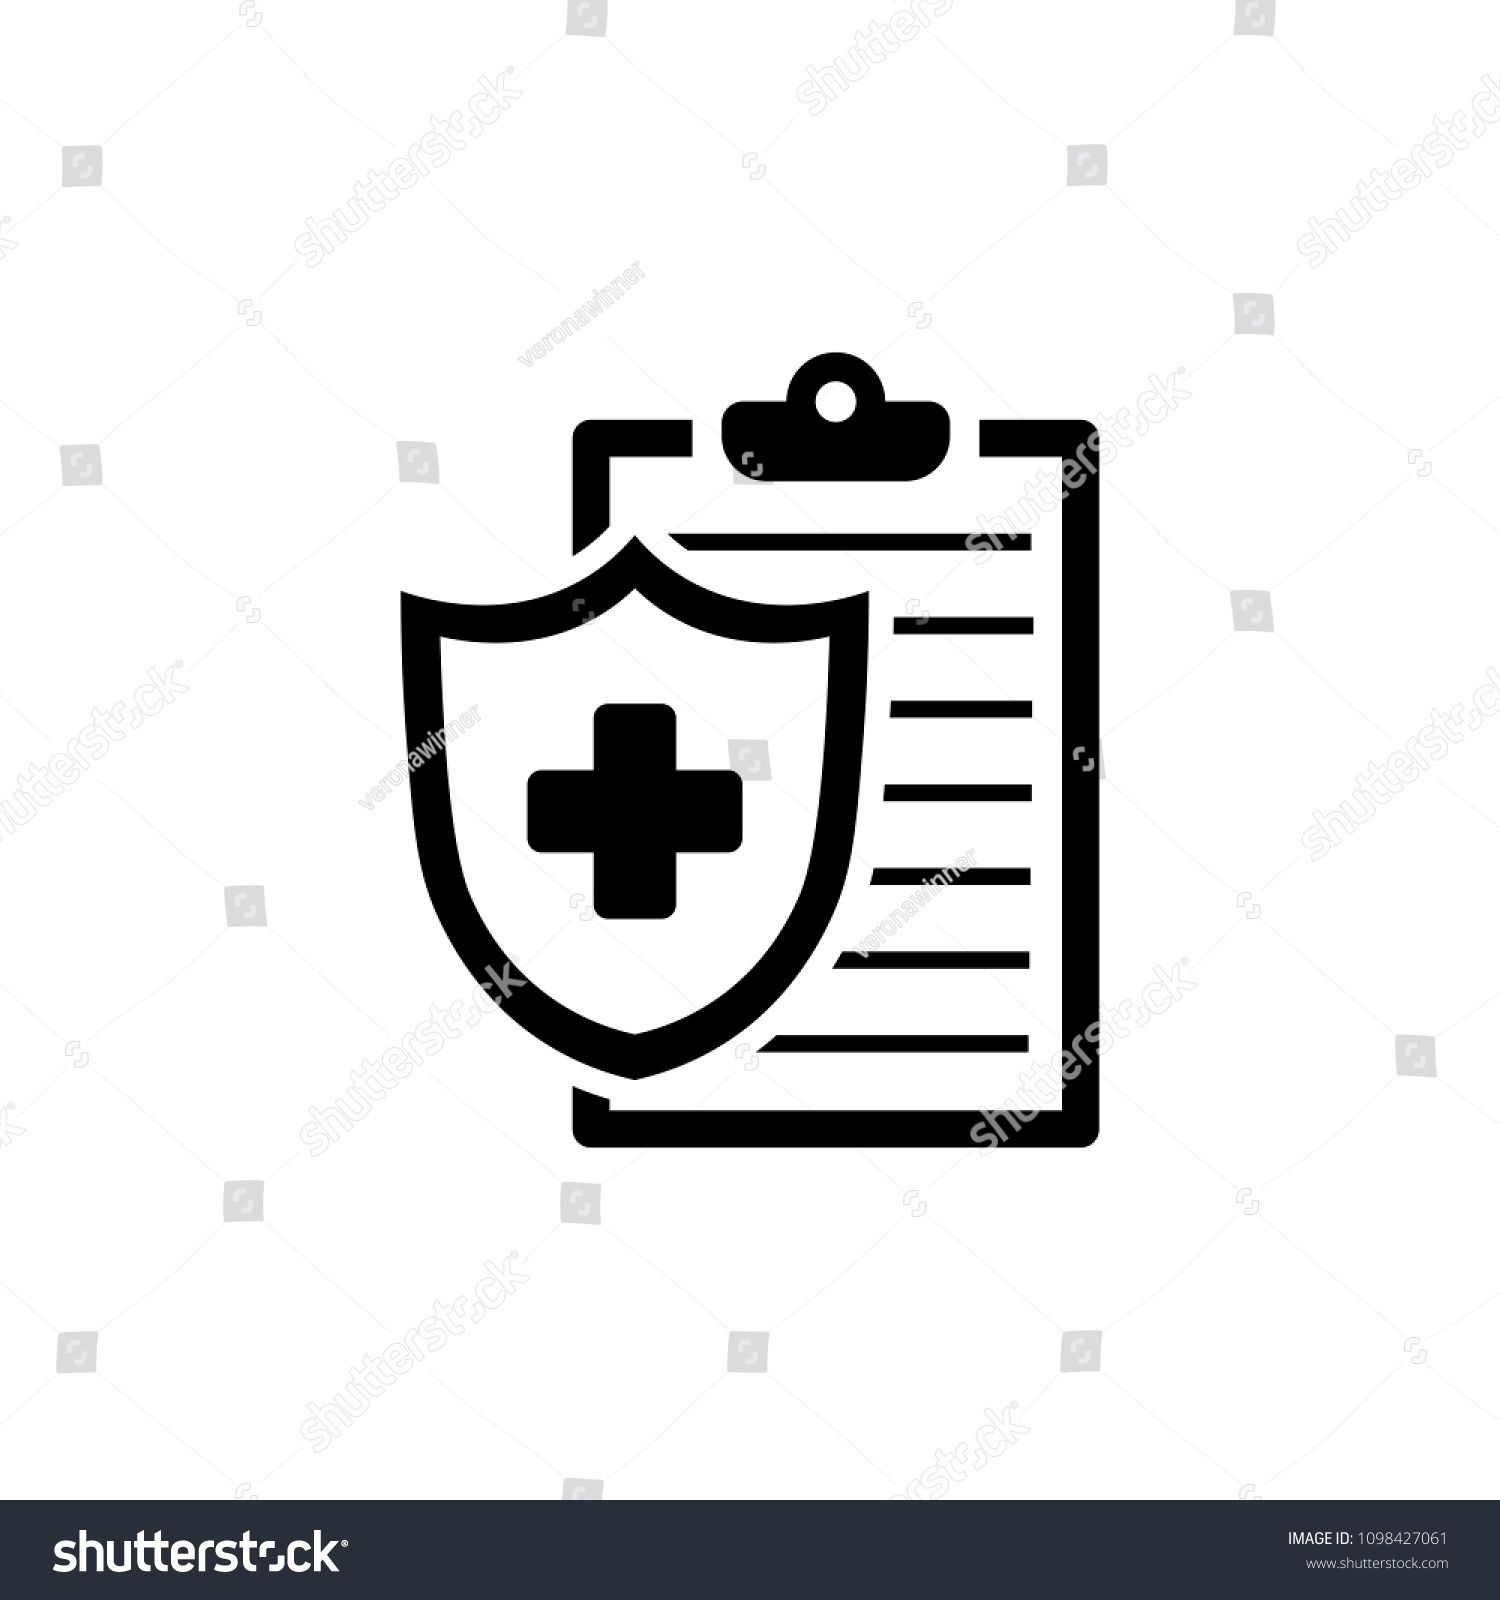 Medical insurance icon in flat style health insurance